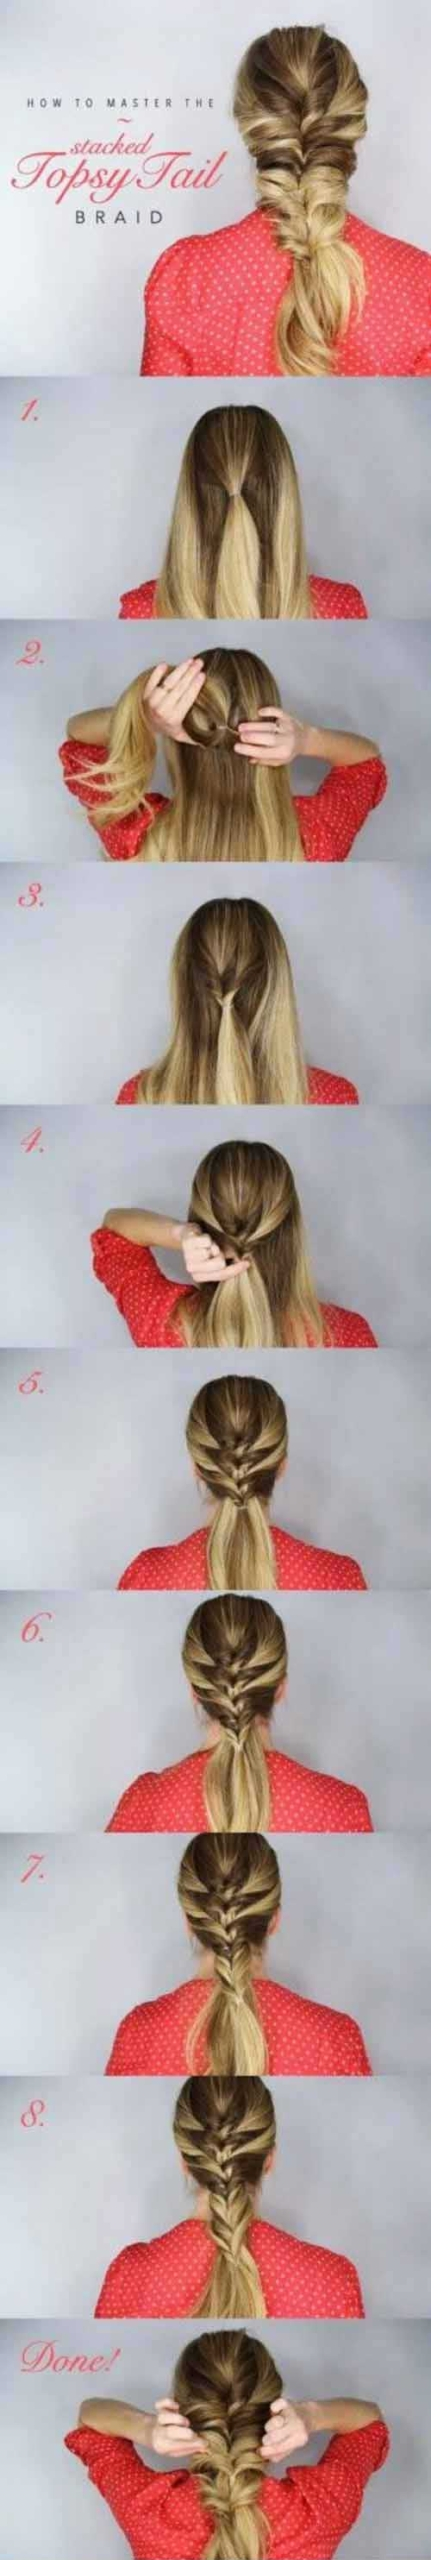 Braid Hairstyles For Girls - Some Of The Best - Human Hair Exim